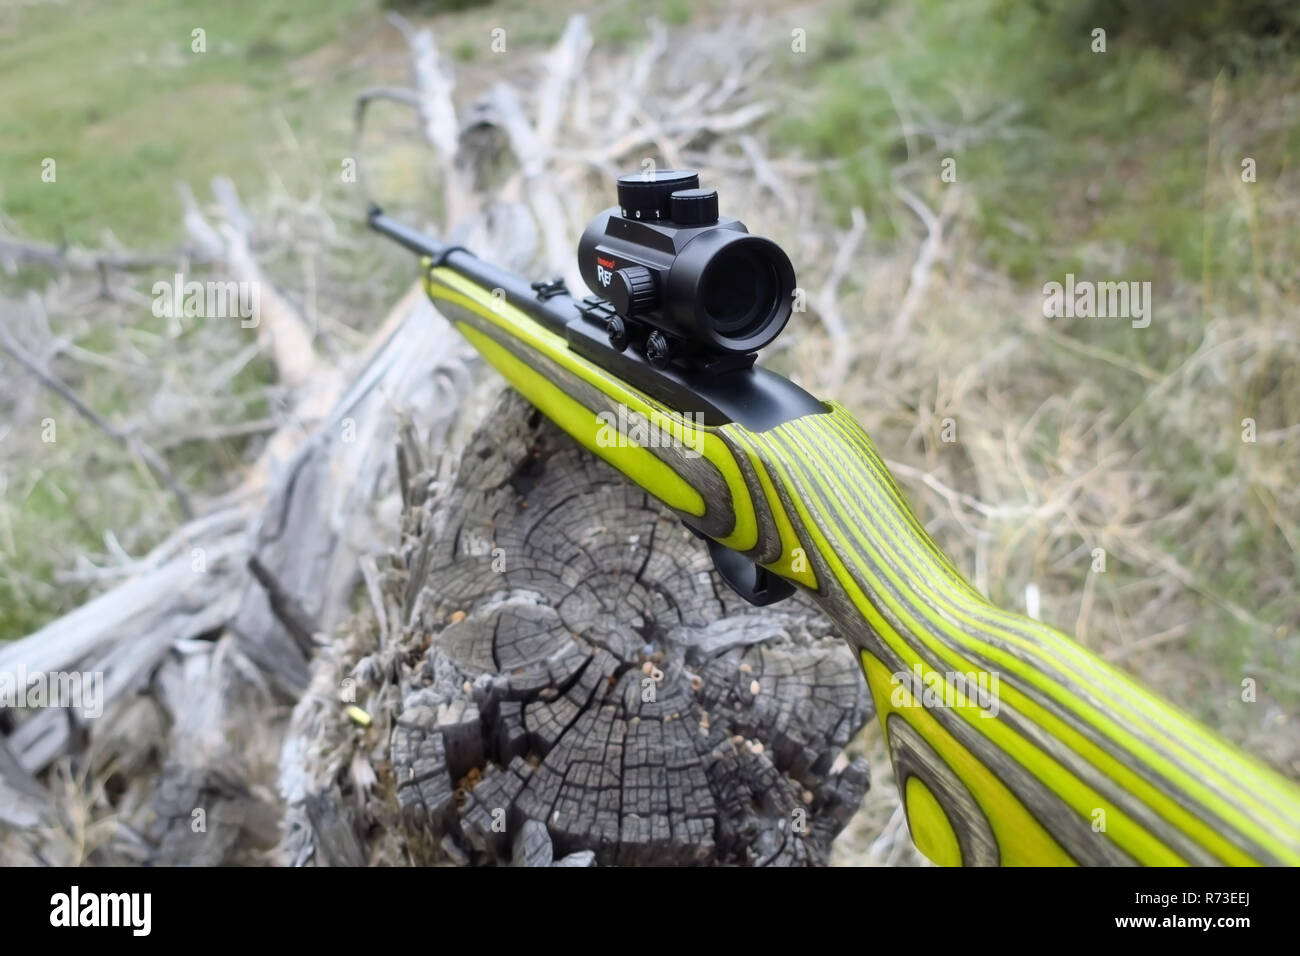 22 Rifle Stock Photos & 22 Rifle Stock Images - Alamy